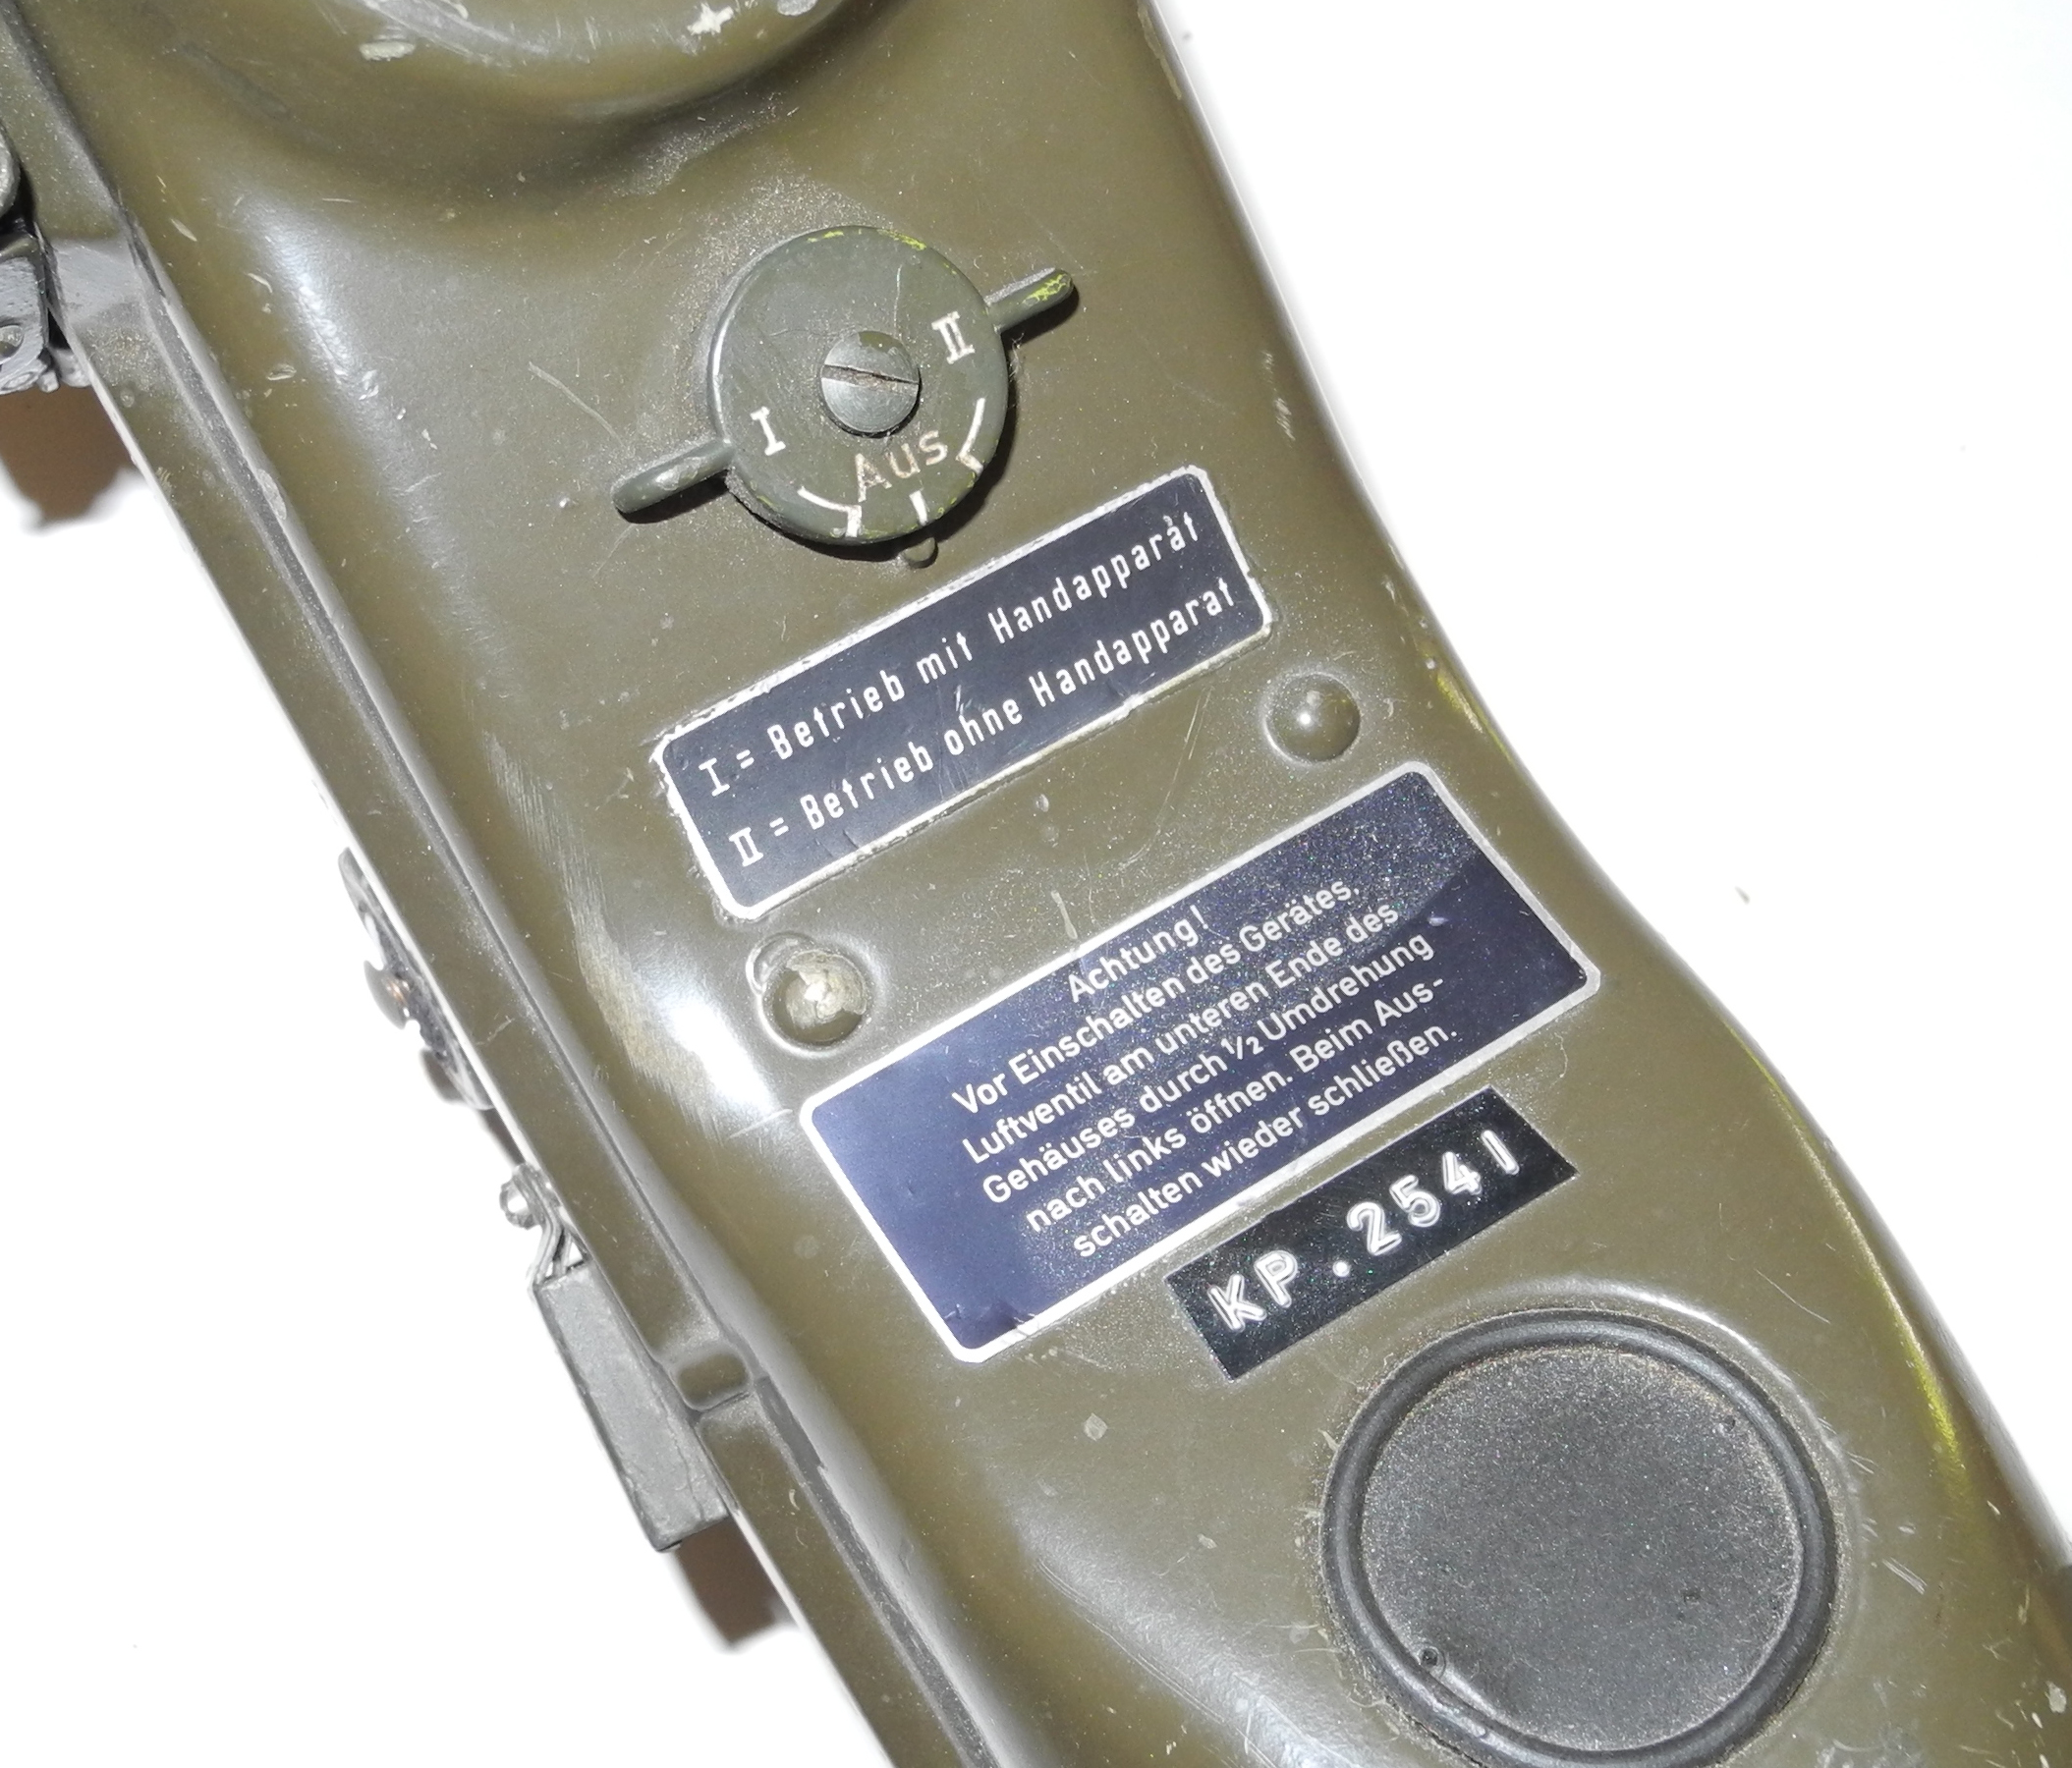 Cold War era German walkie-talkie